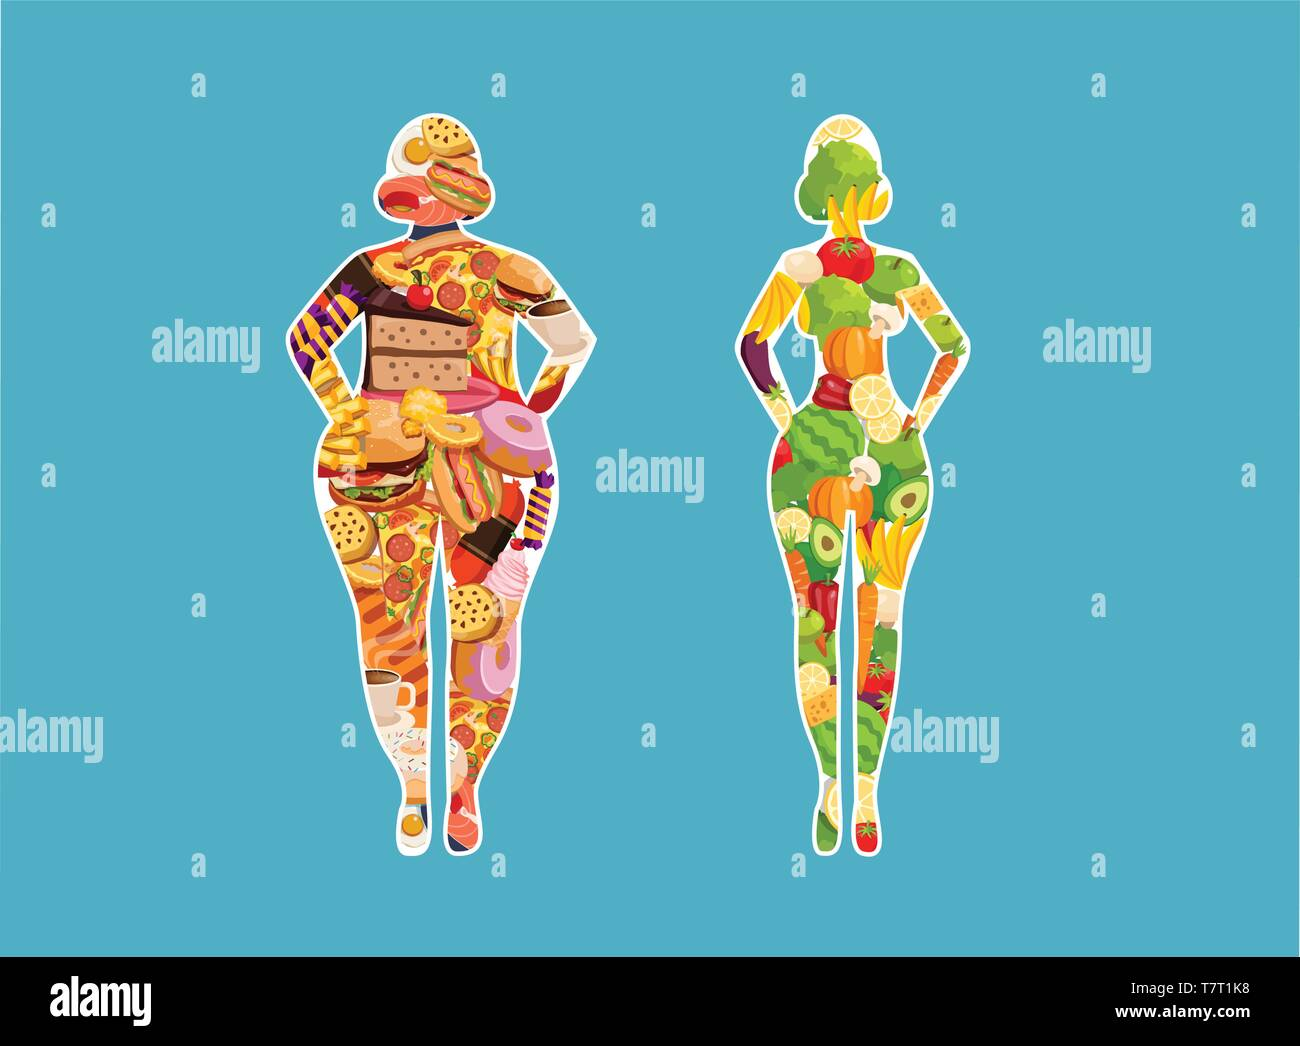 Vector of a fit woman eating healthy green vegetables food and a fat girl eating junk food. Diet choice concept. - Stock Vector